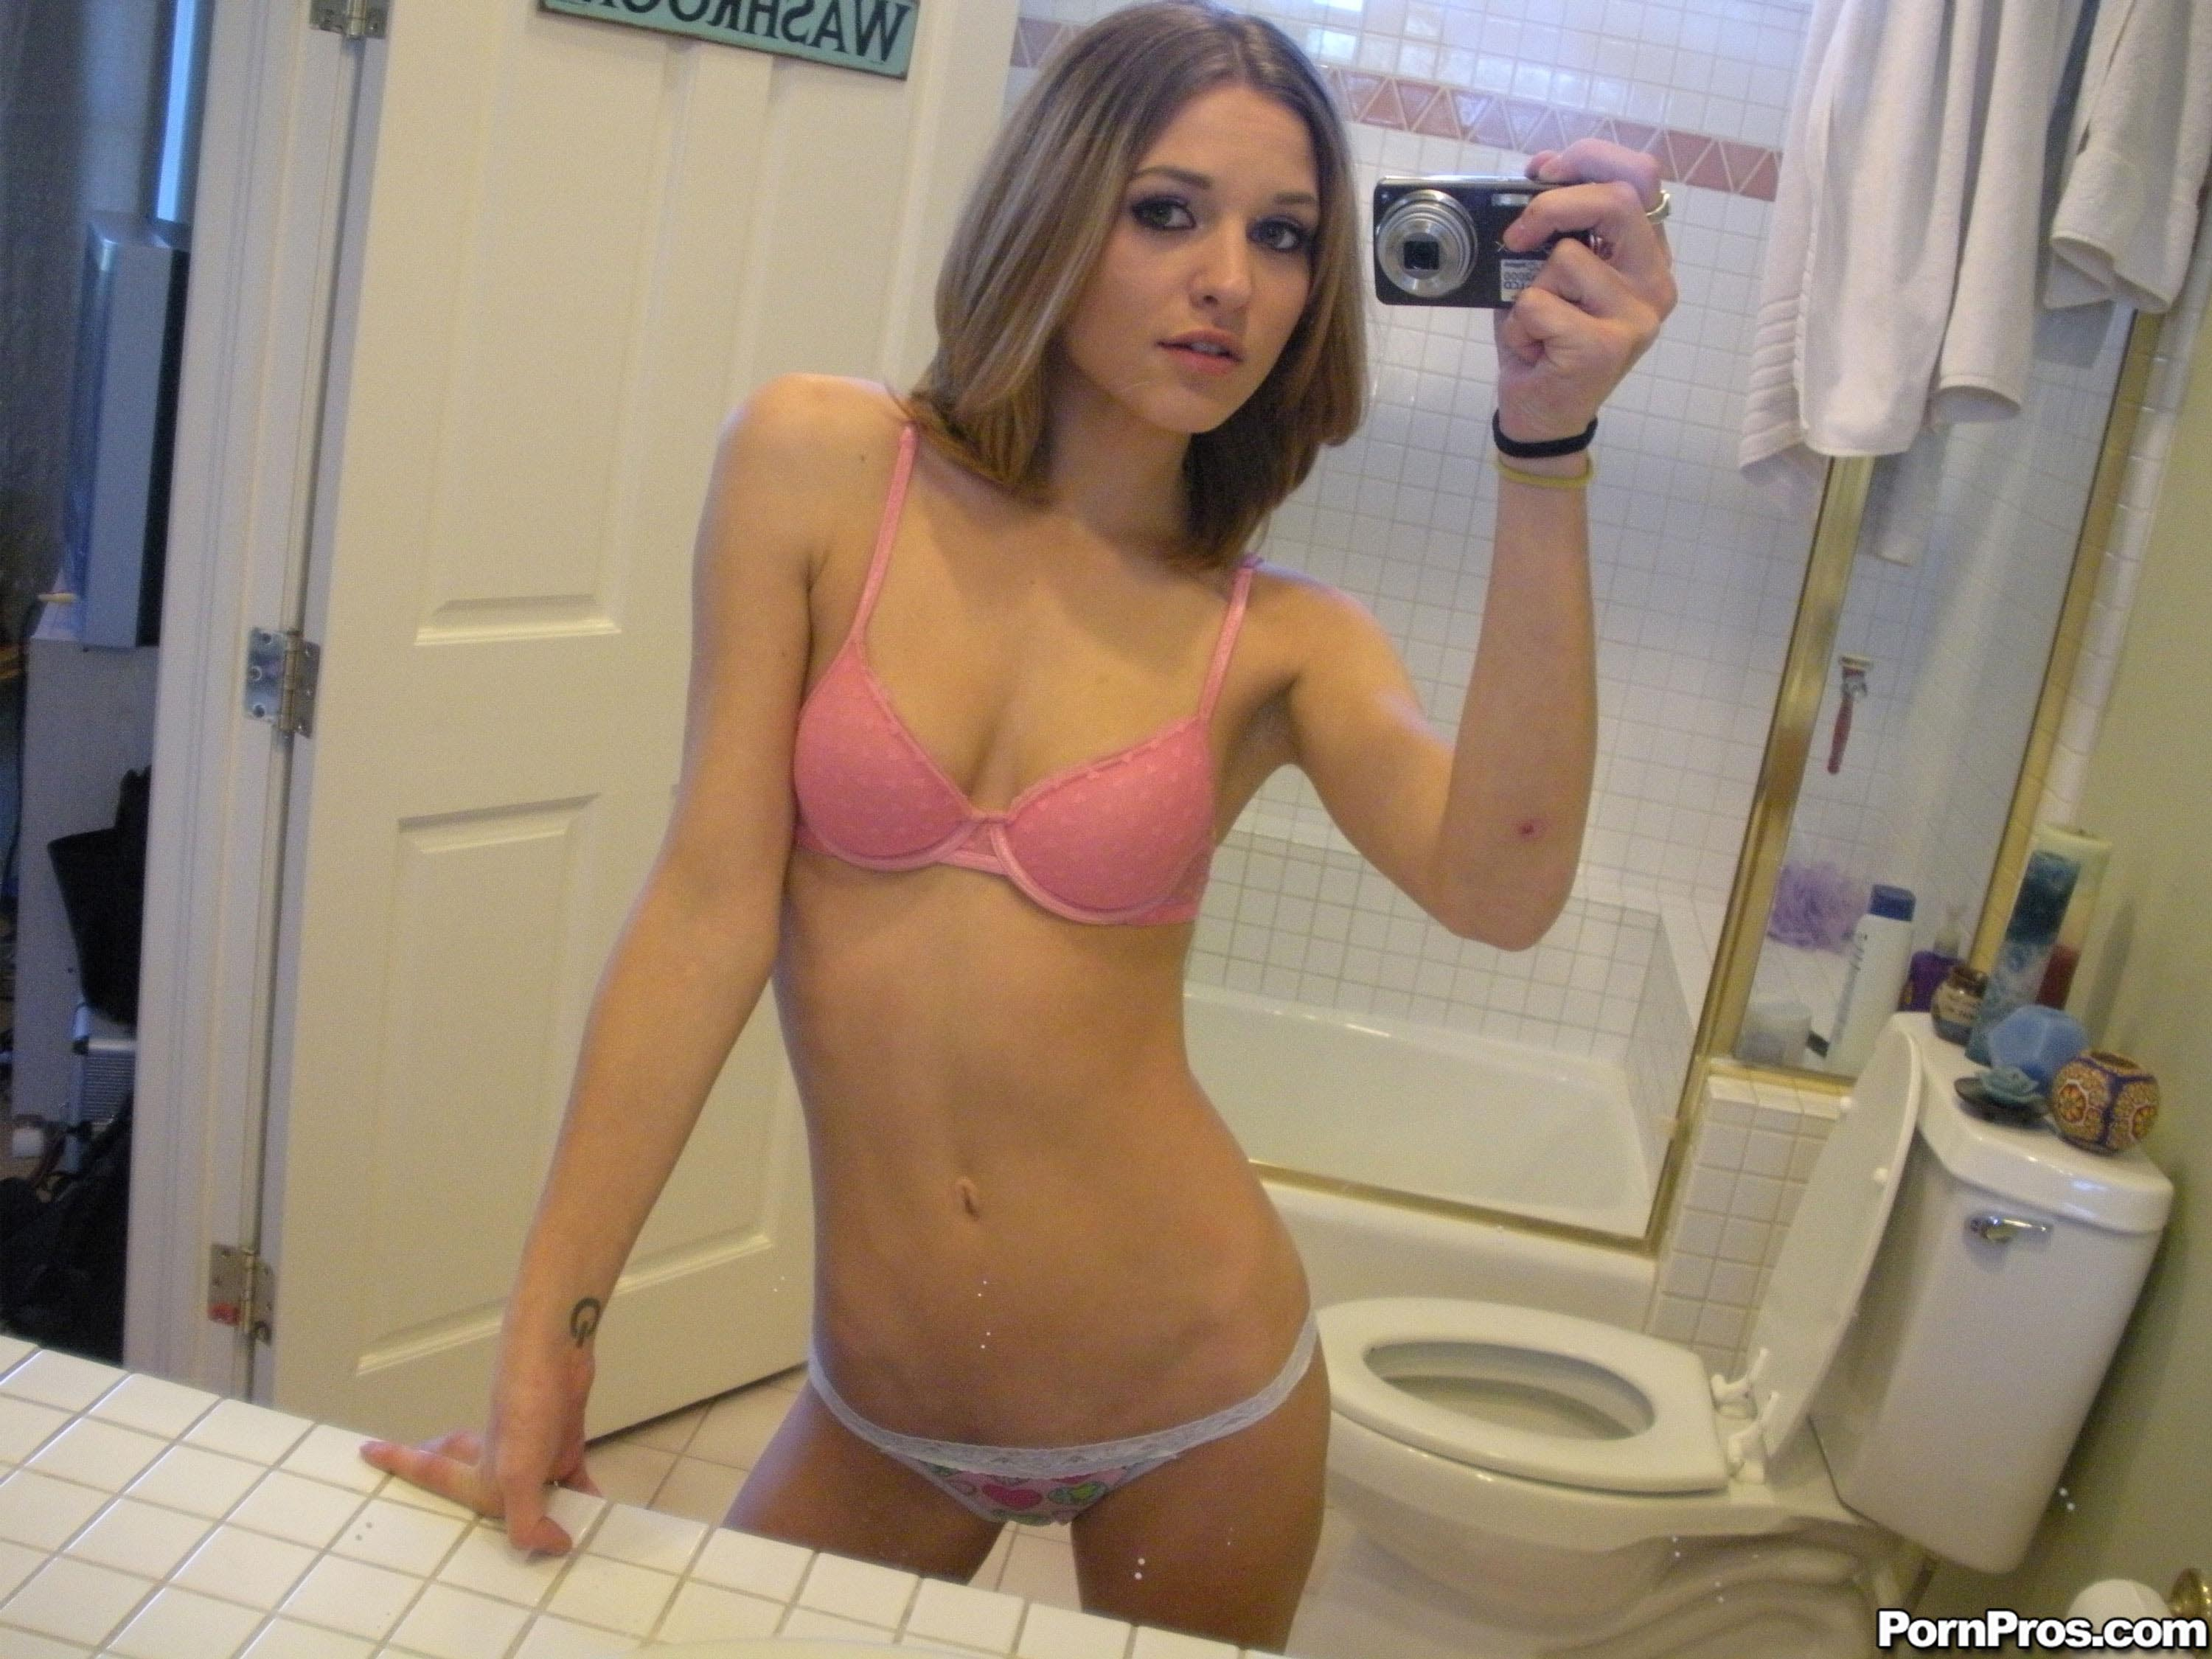 Girlfriend Porn Pics, Naked GF Galleries -